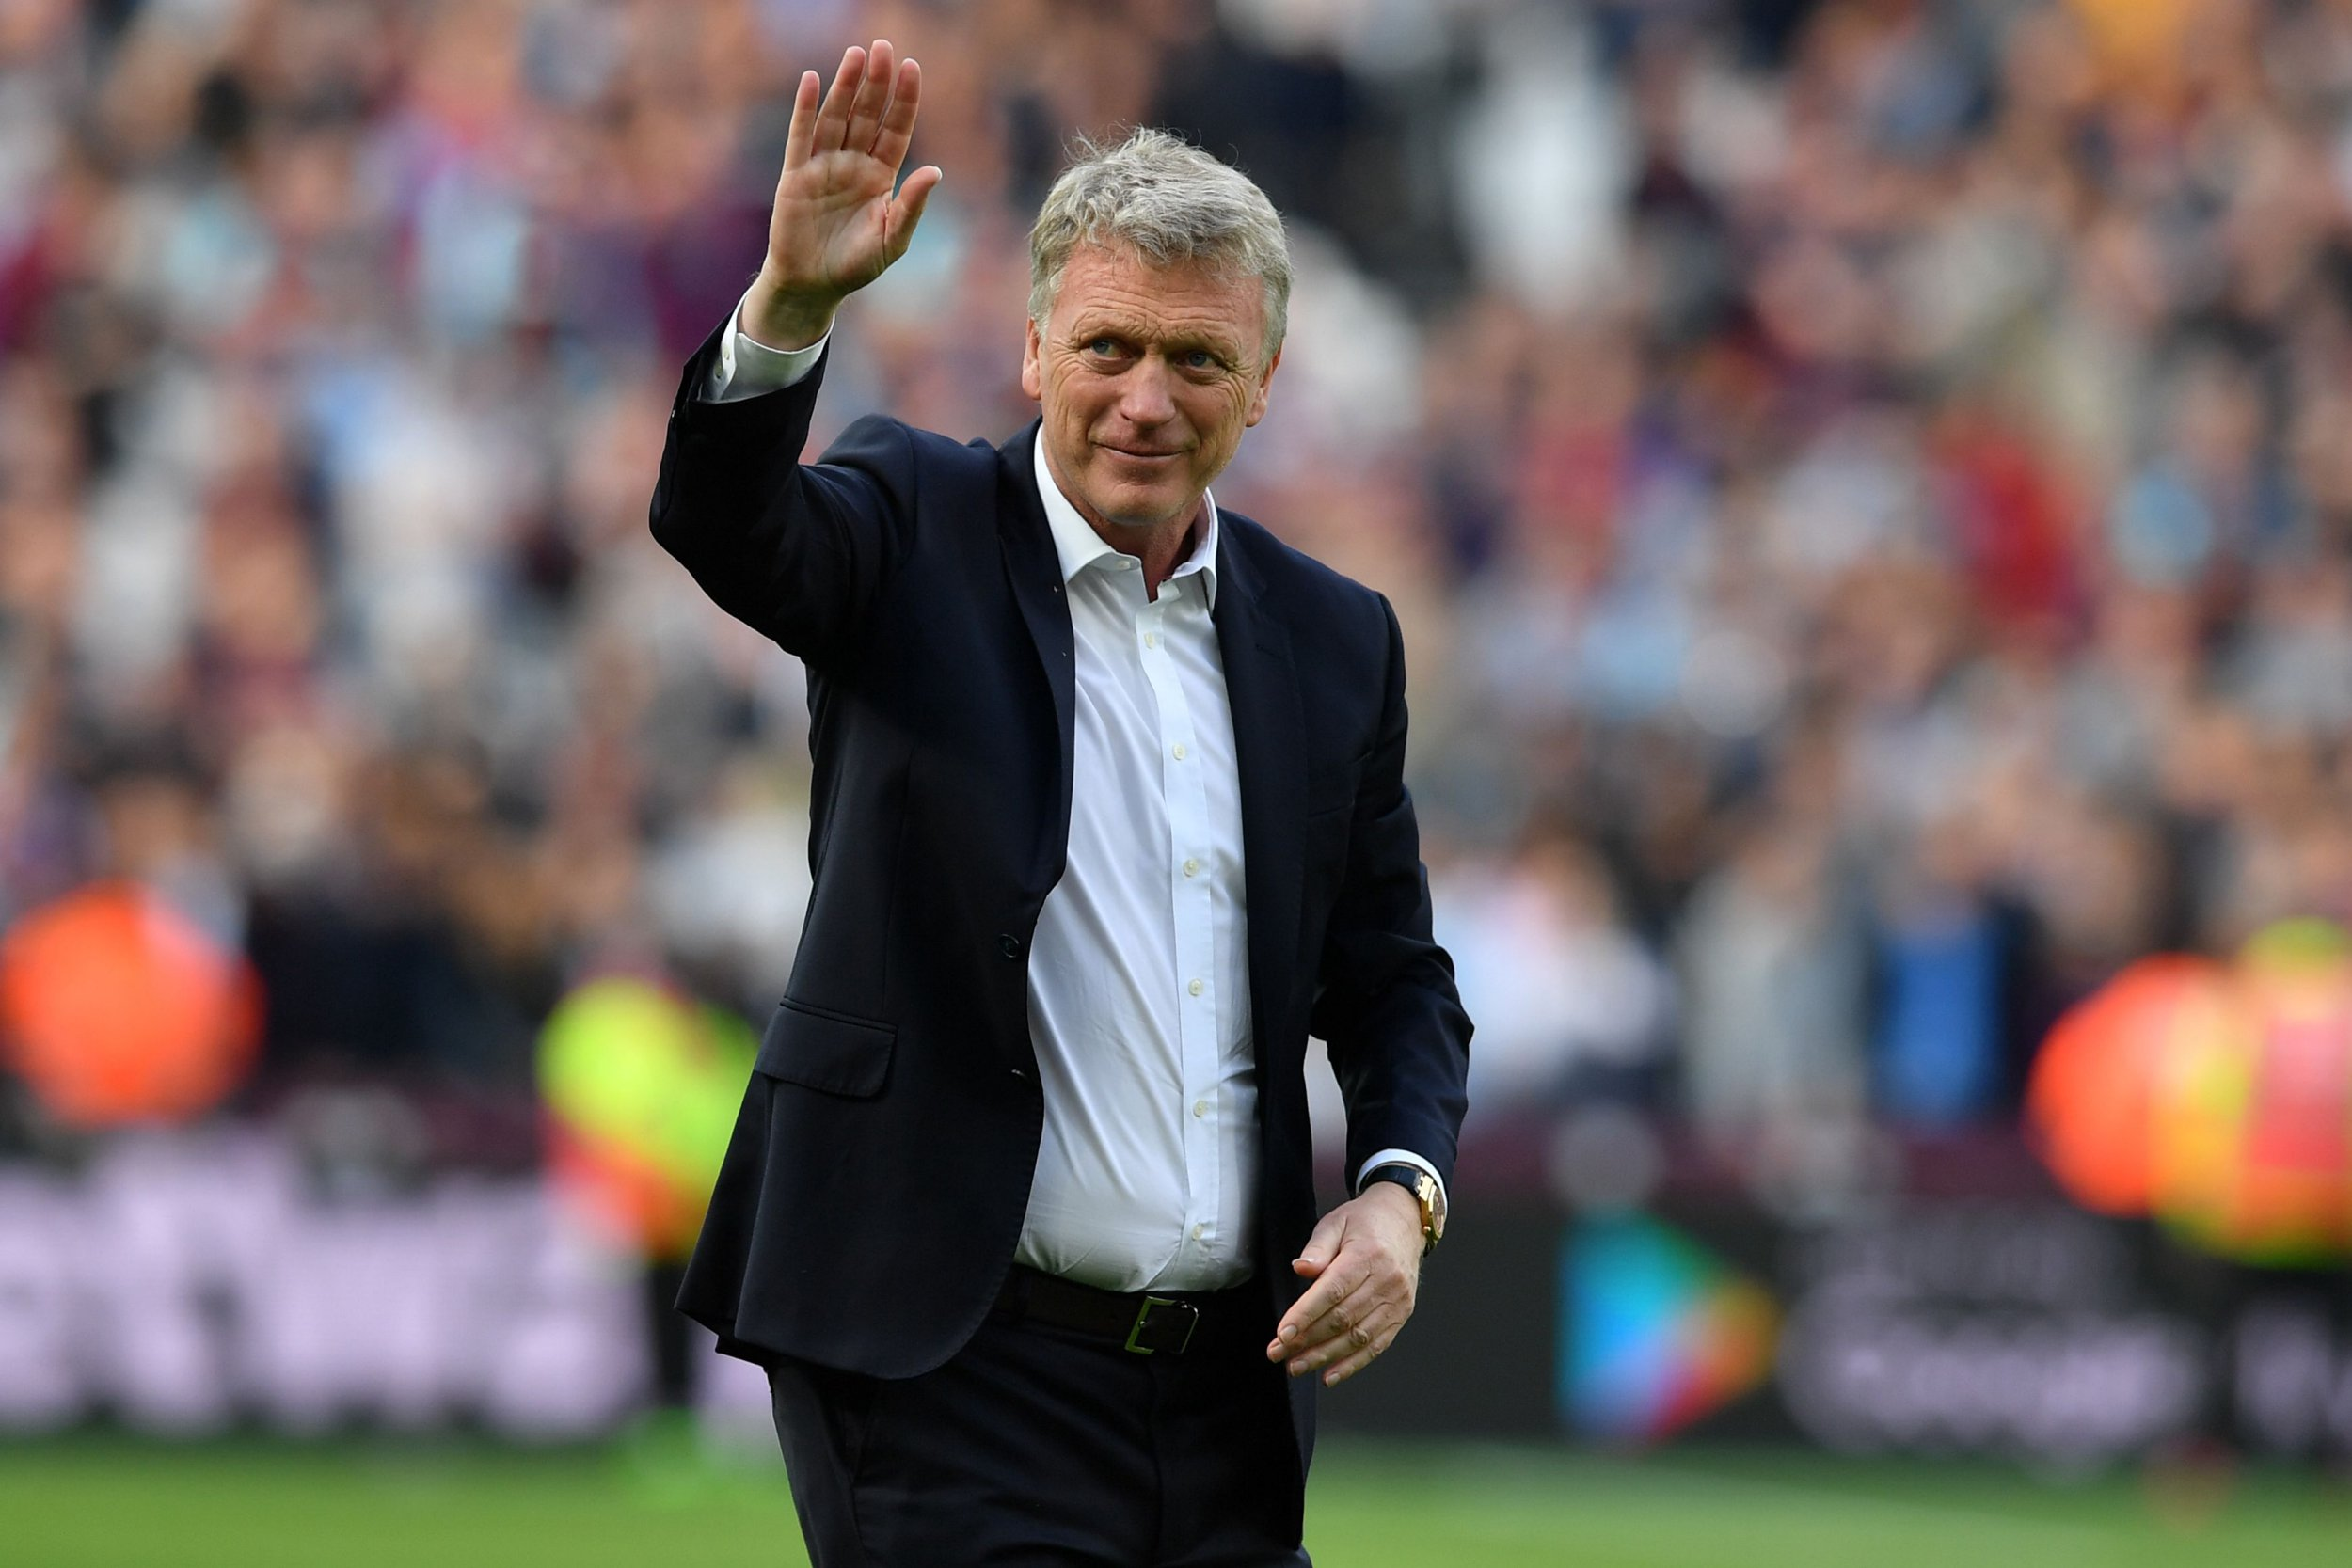 David Moyes leaves post as West Ham manager